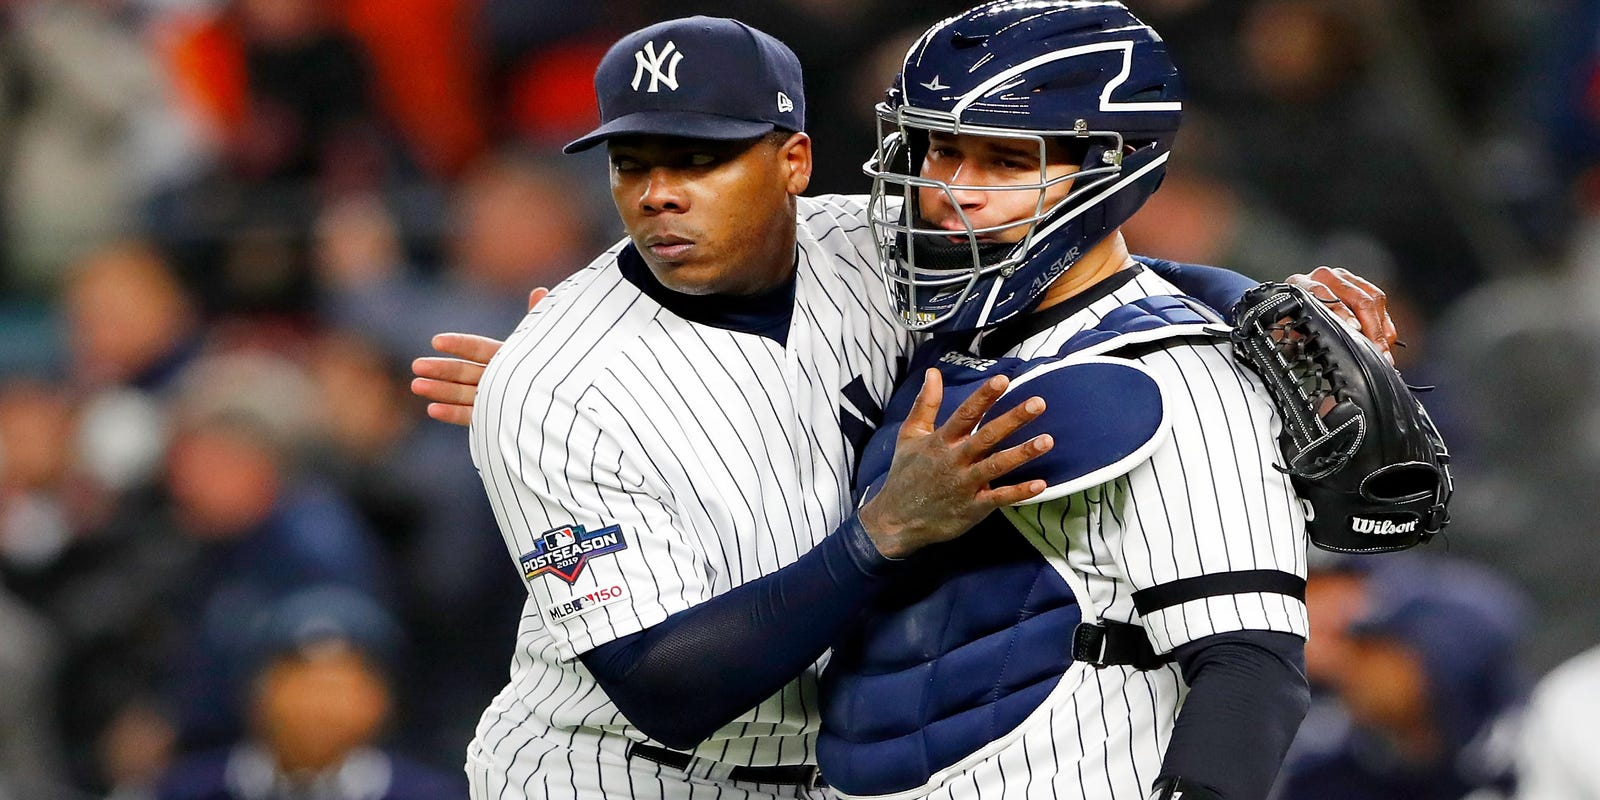 alcs game 6 live stream free